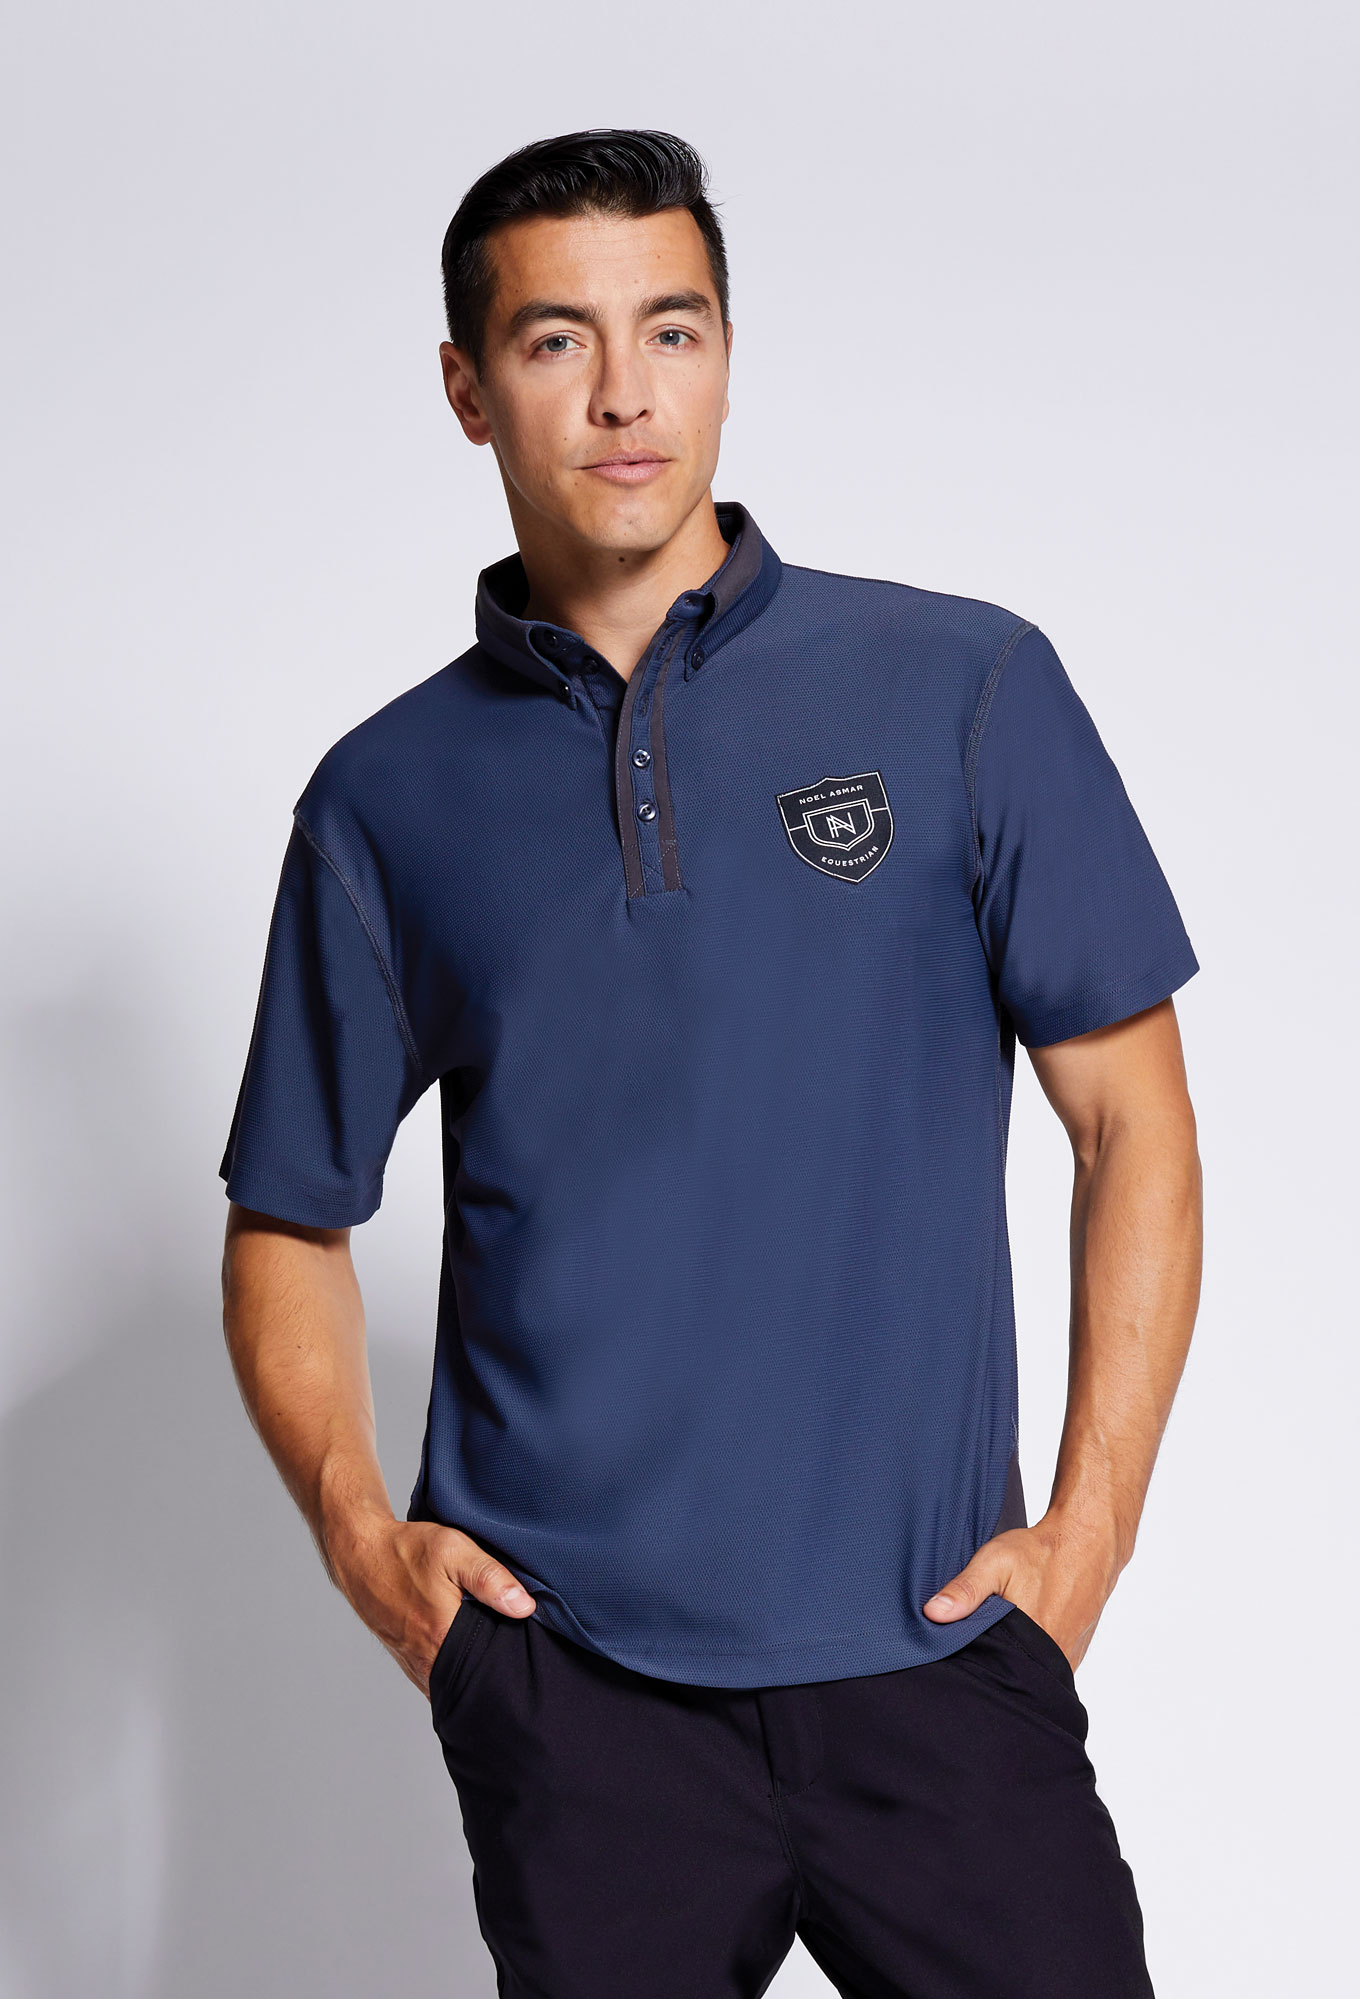 AE1829-navy-front.jpg